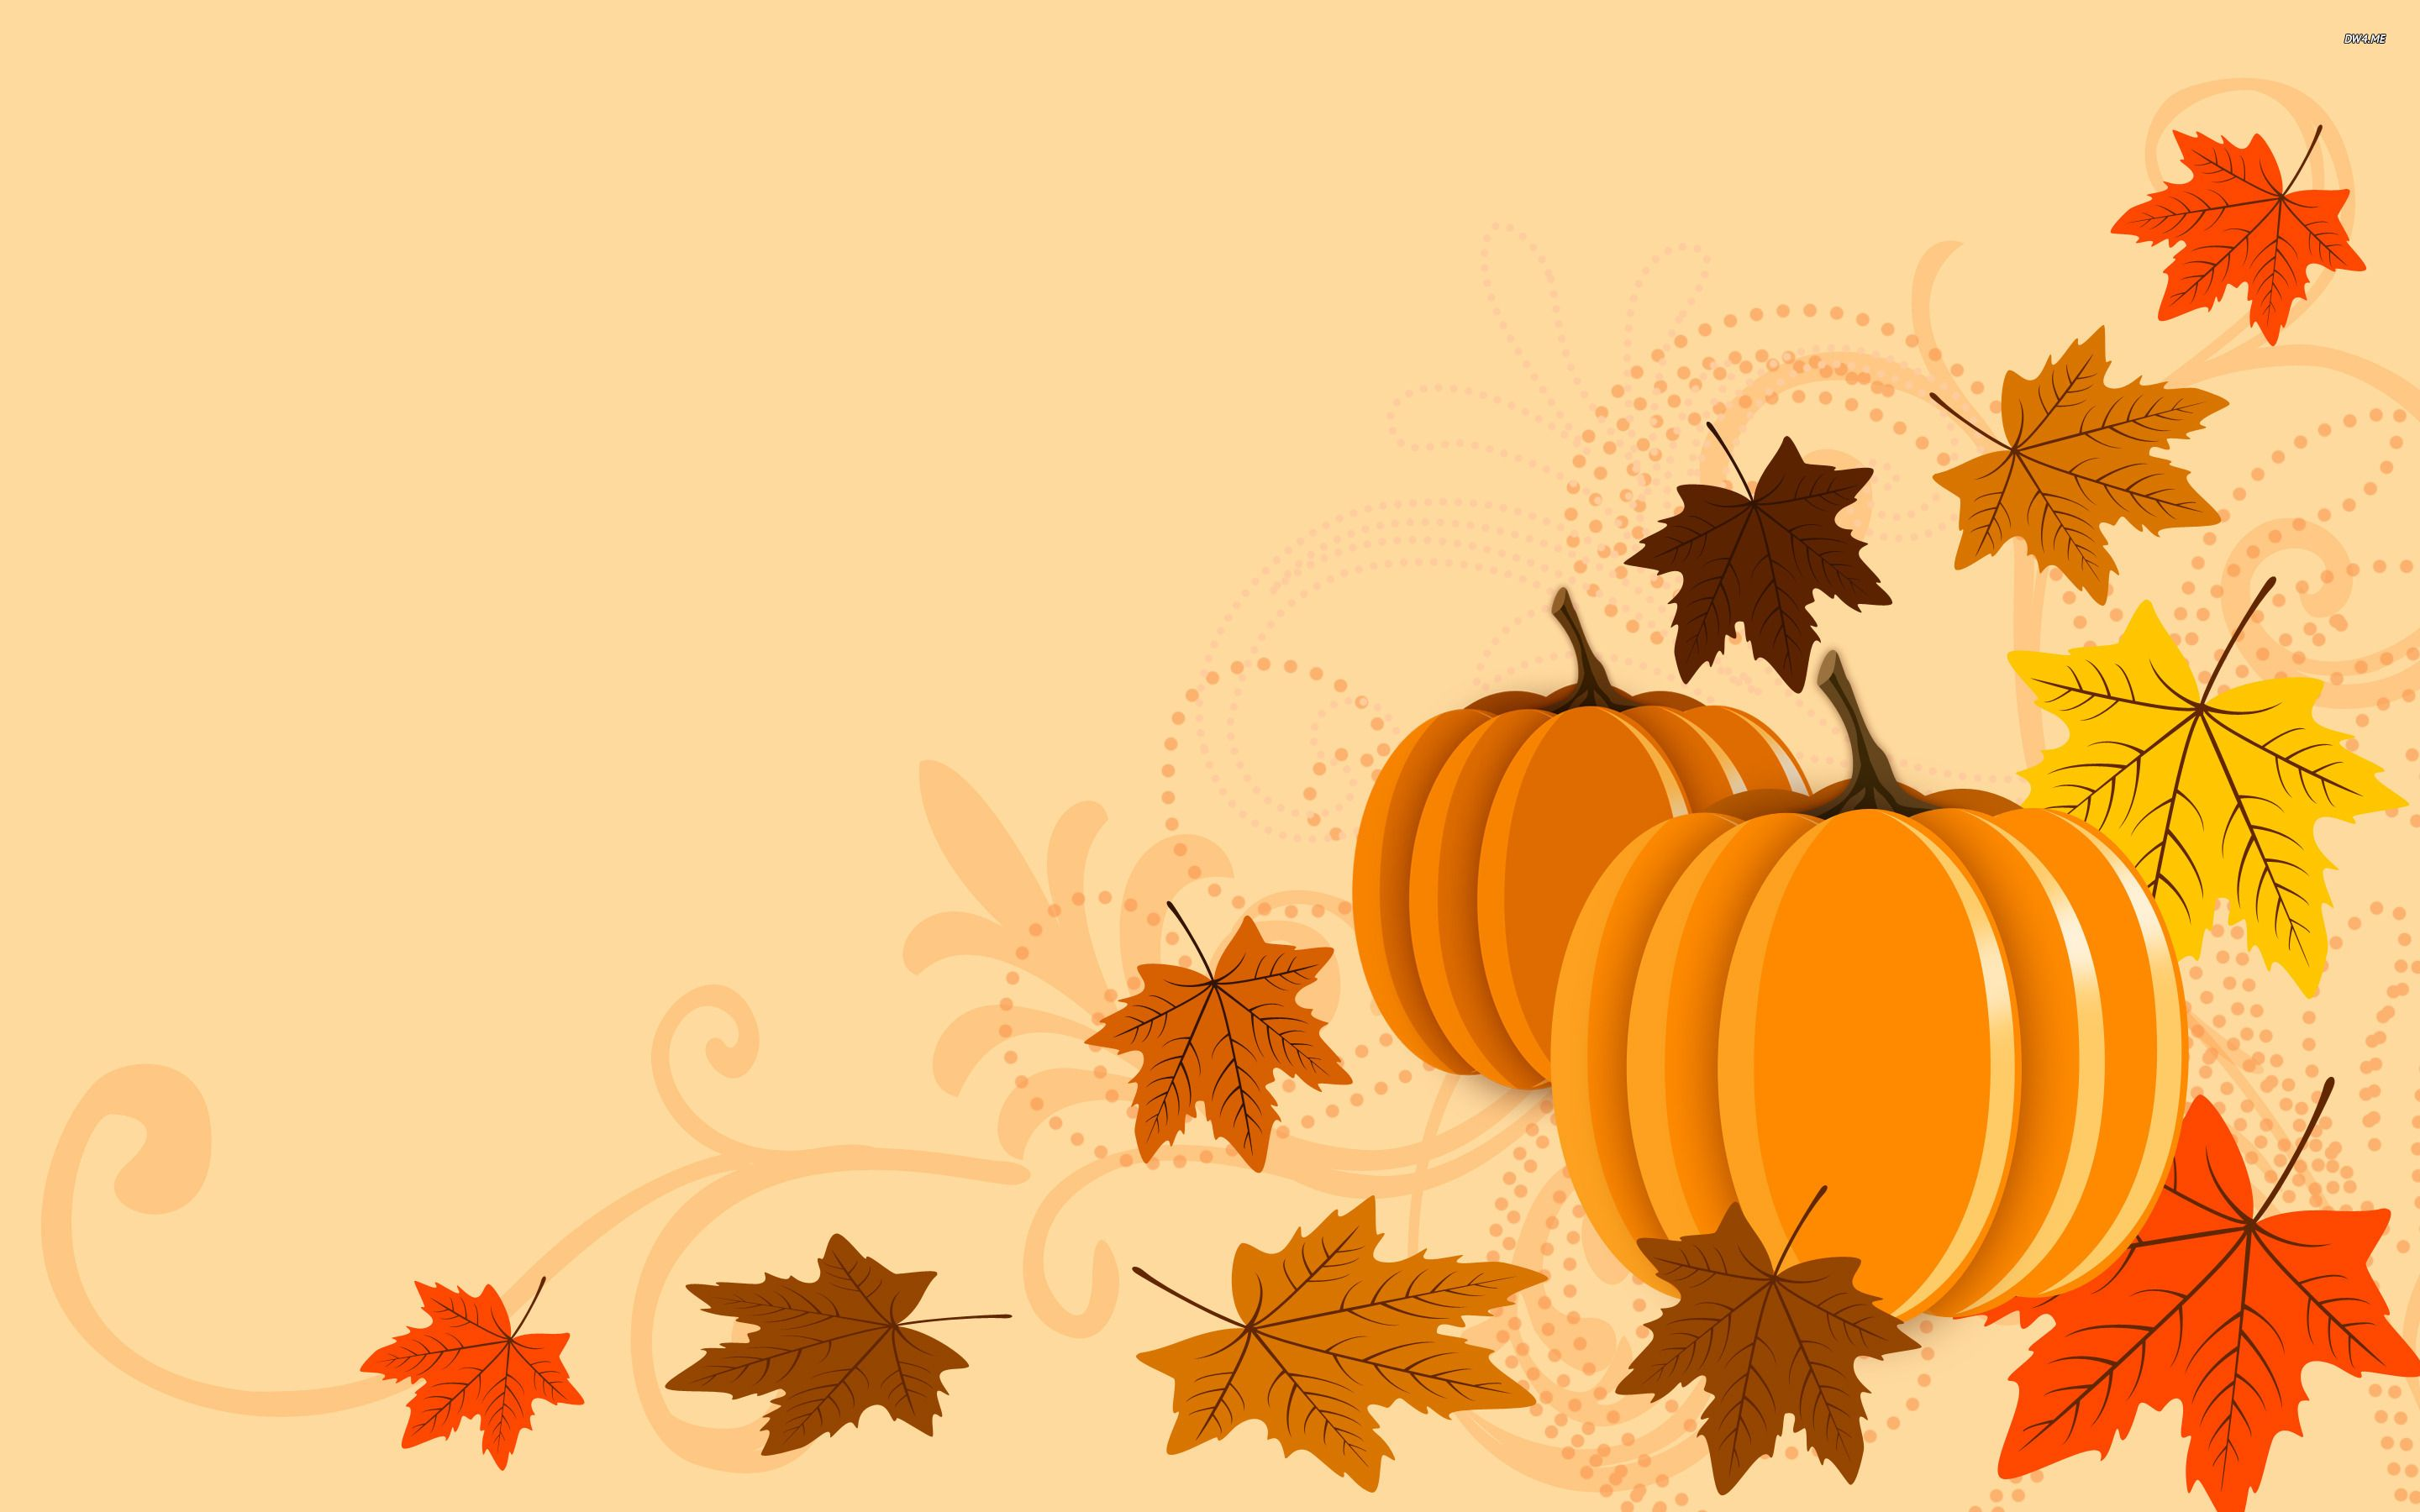 Fall Pumpkin Desktop Backgrounds